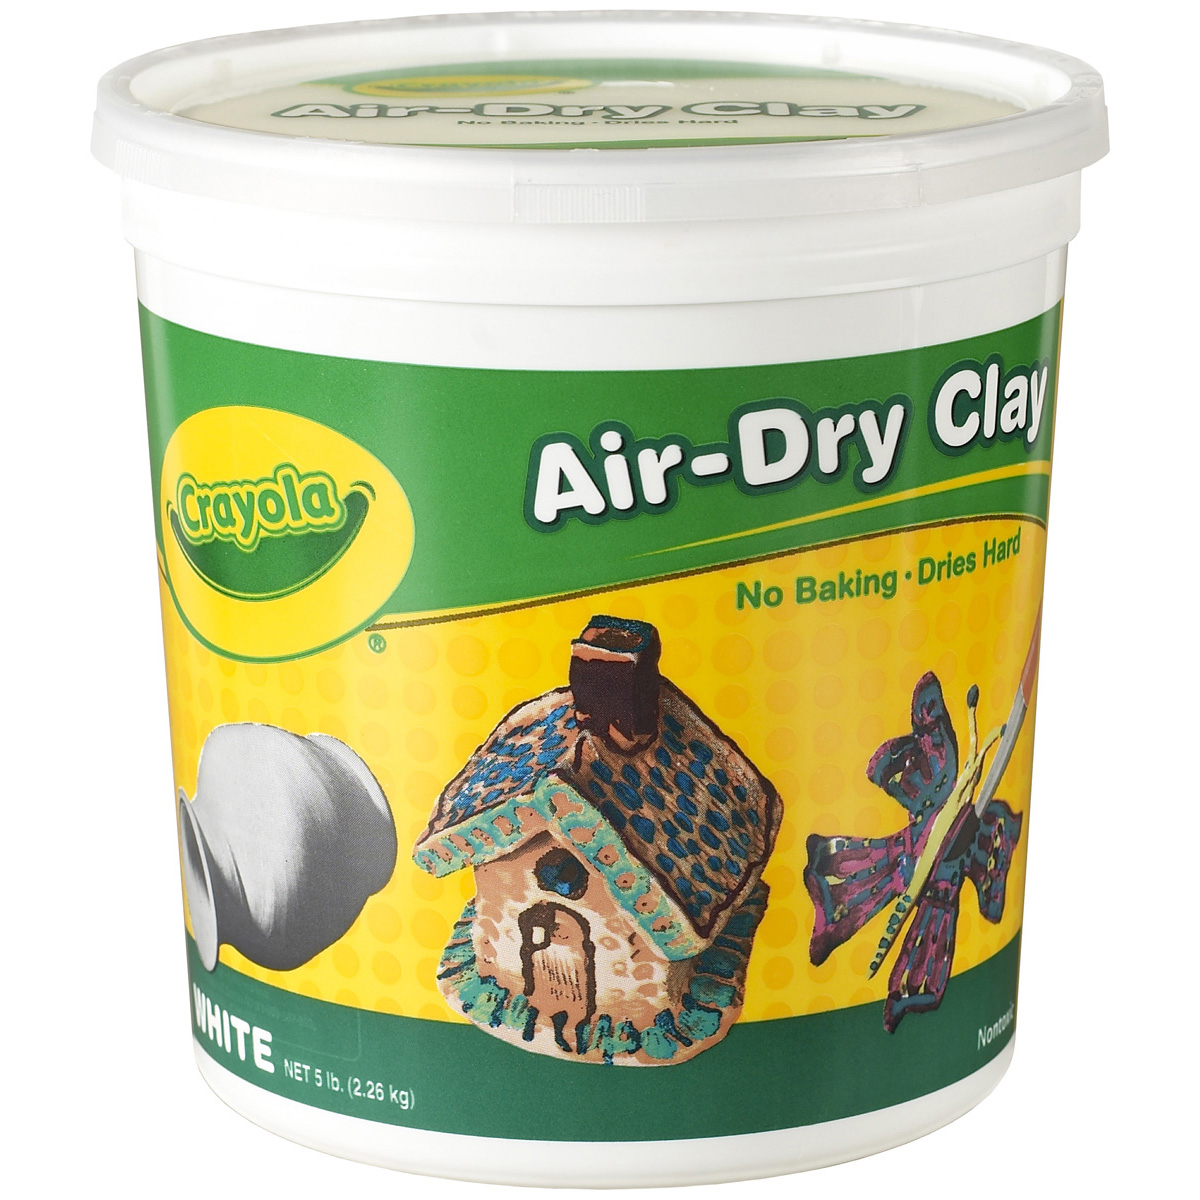 Crayola Air-Dry Easy-to-Use Durable Non-Toxic Self-Hardening Modeling Clay, 5 lb Bucket,... by Crayola